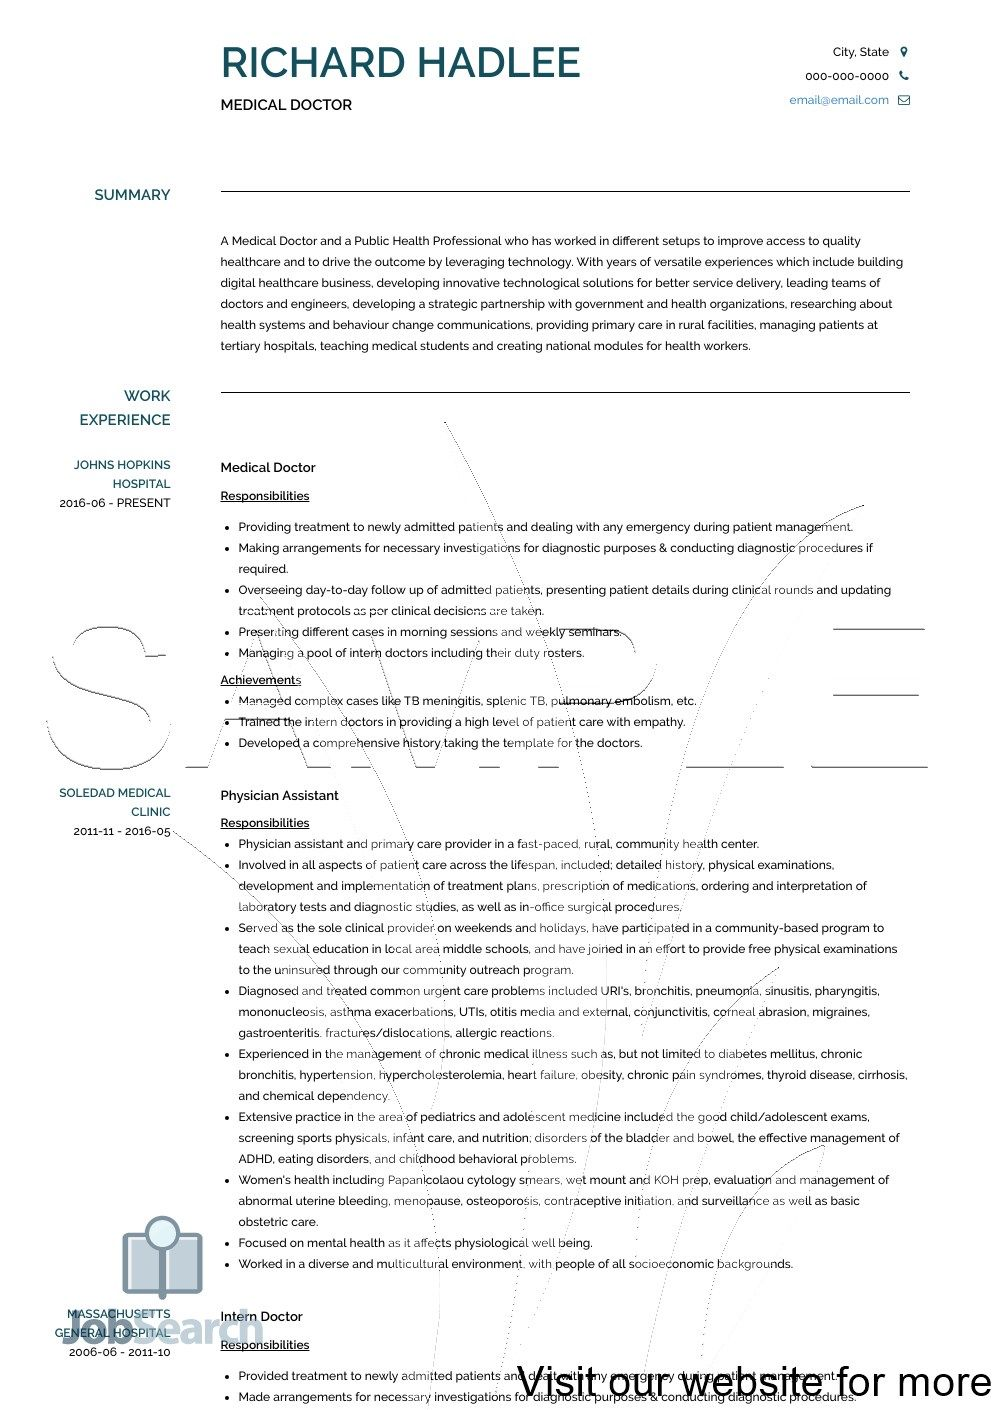 Medical Doctor Resume Templates, Job Interview Tips 2020